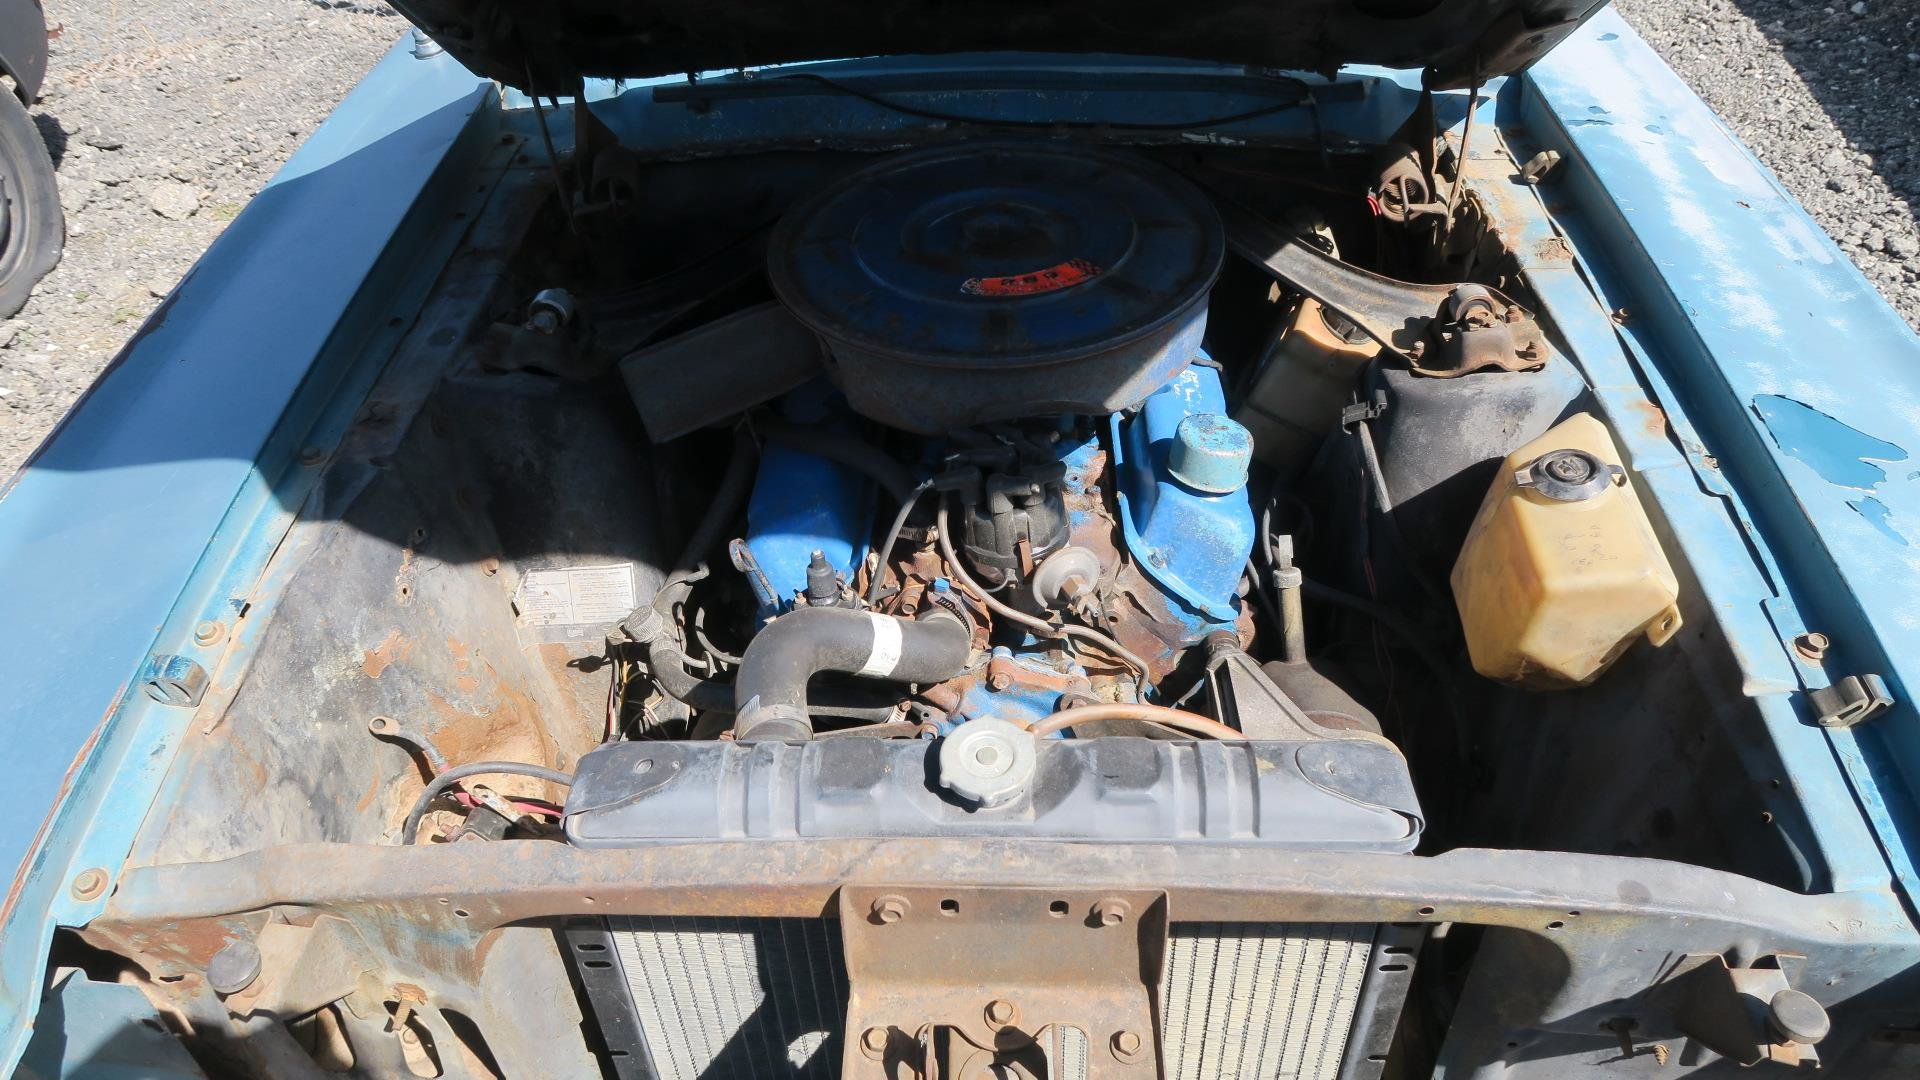 1967 Mercury Cougar 289 C Code Auto Project Blue  $1.9k For Sale (picture 6 of 6)